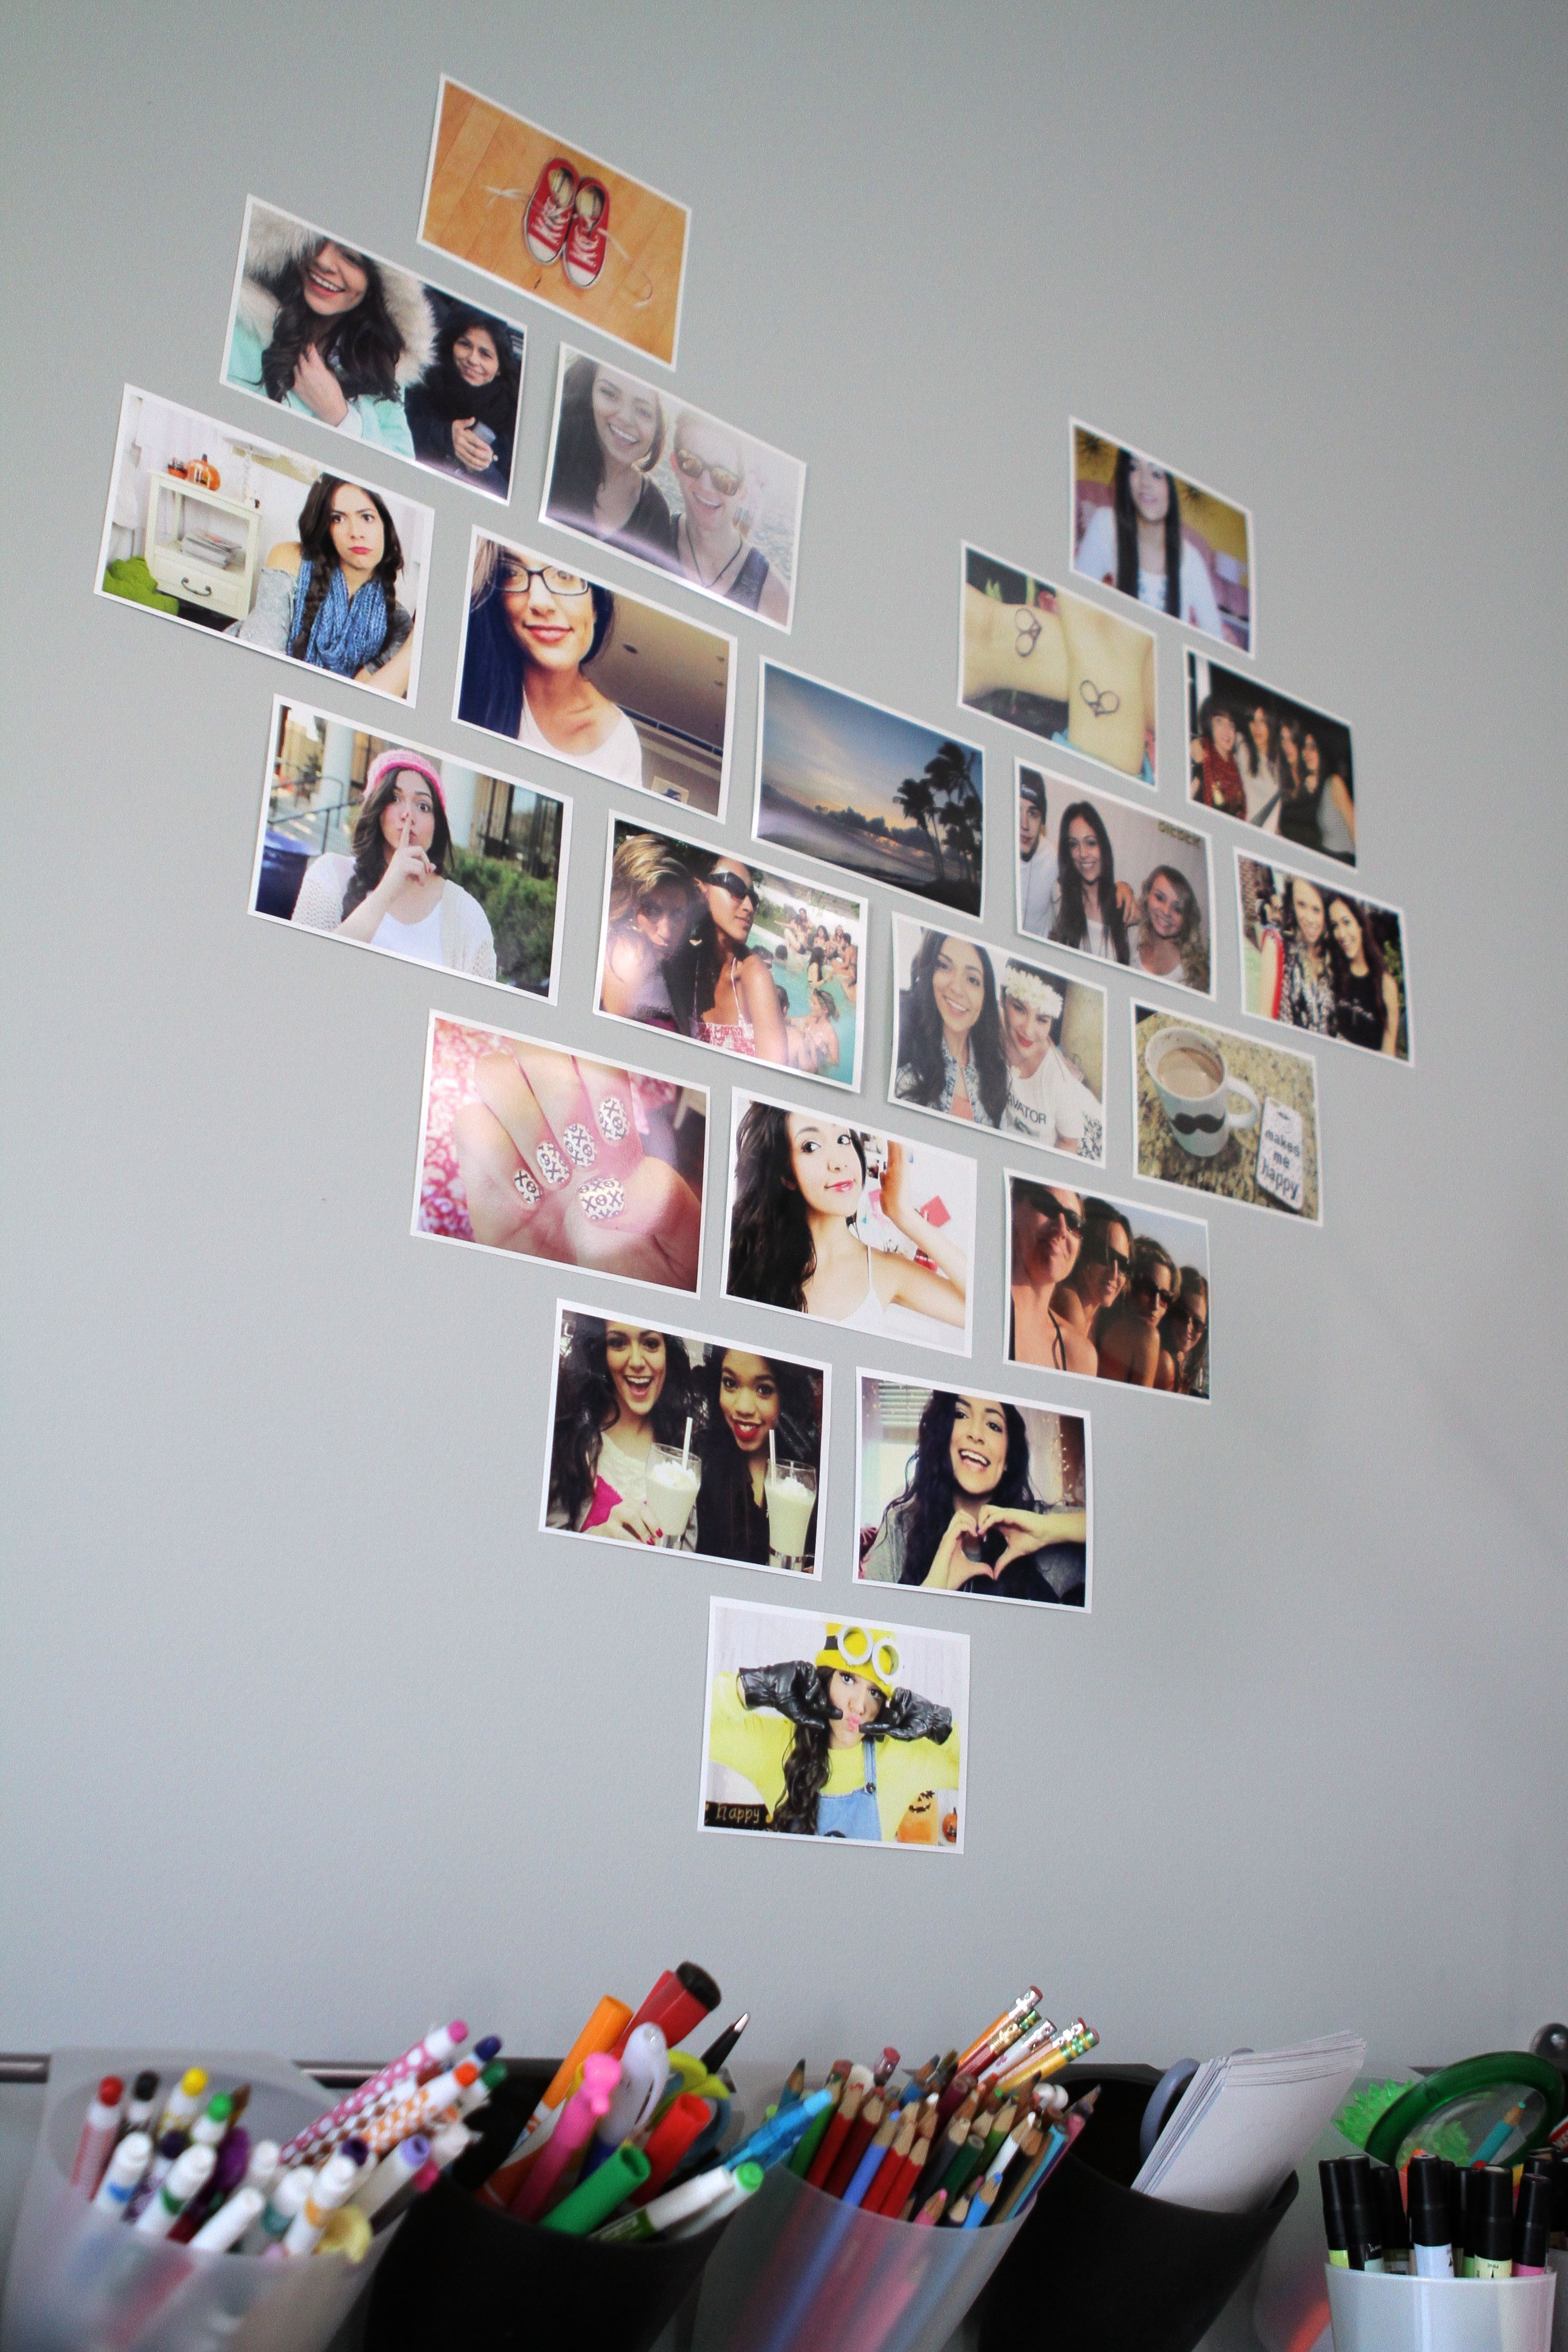 Room Decor Decorate Your Room With Photos In A Heart Layout